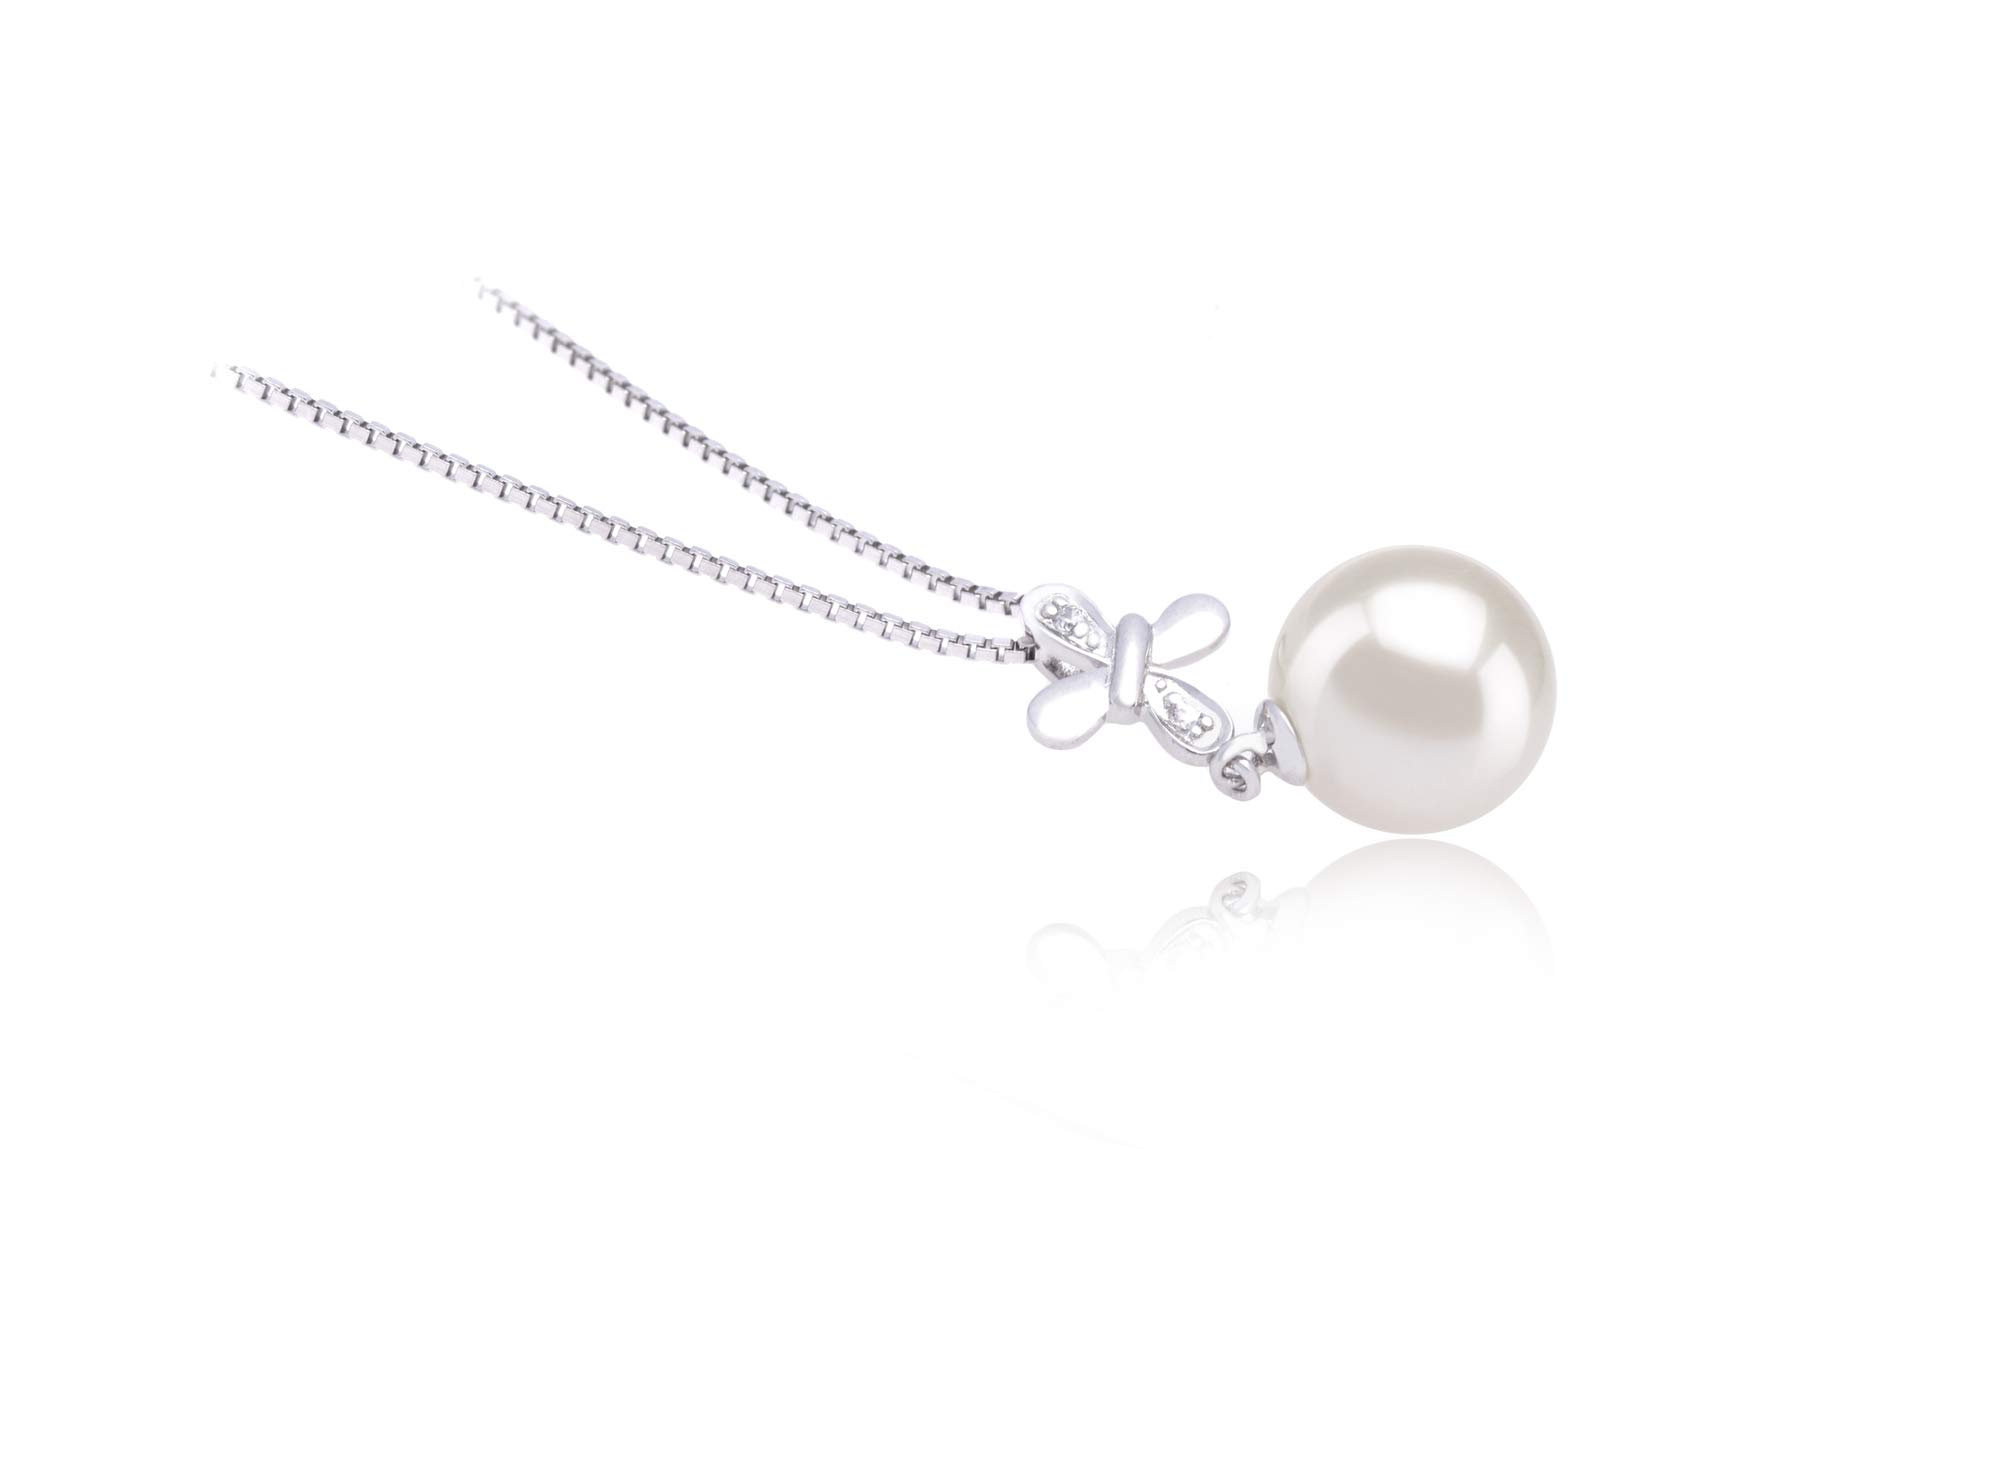 Taylor White 9-10mm AAAA Quality Freshwater 925 Sterling Silver Cultured Pearl Pendant For Women by PearlsOnly (Image #3)